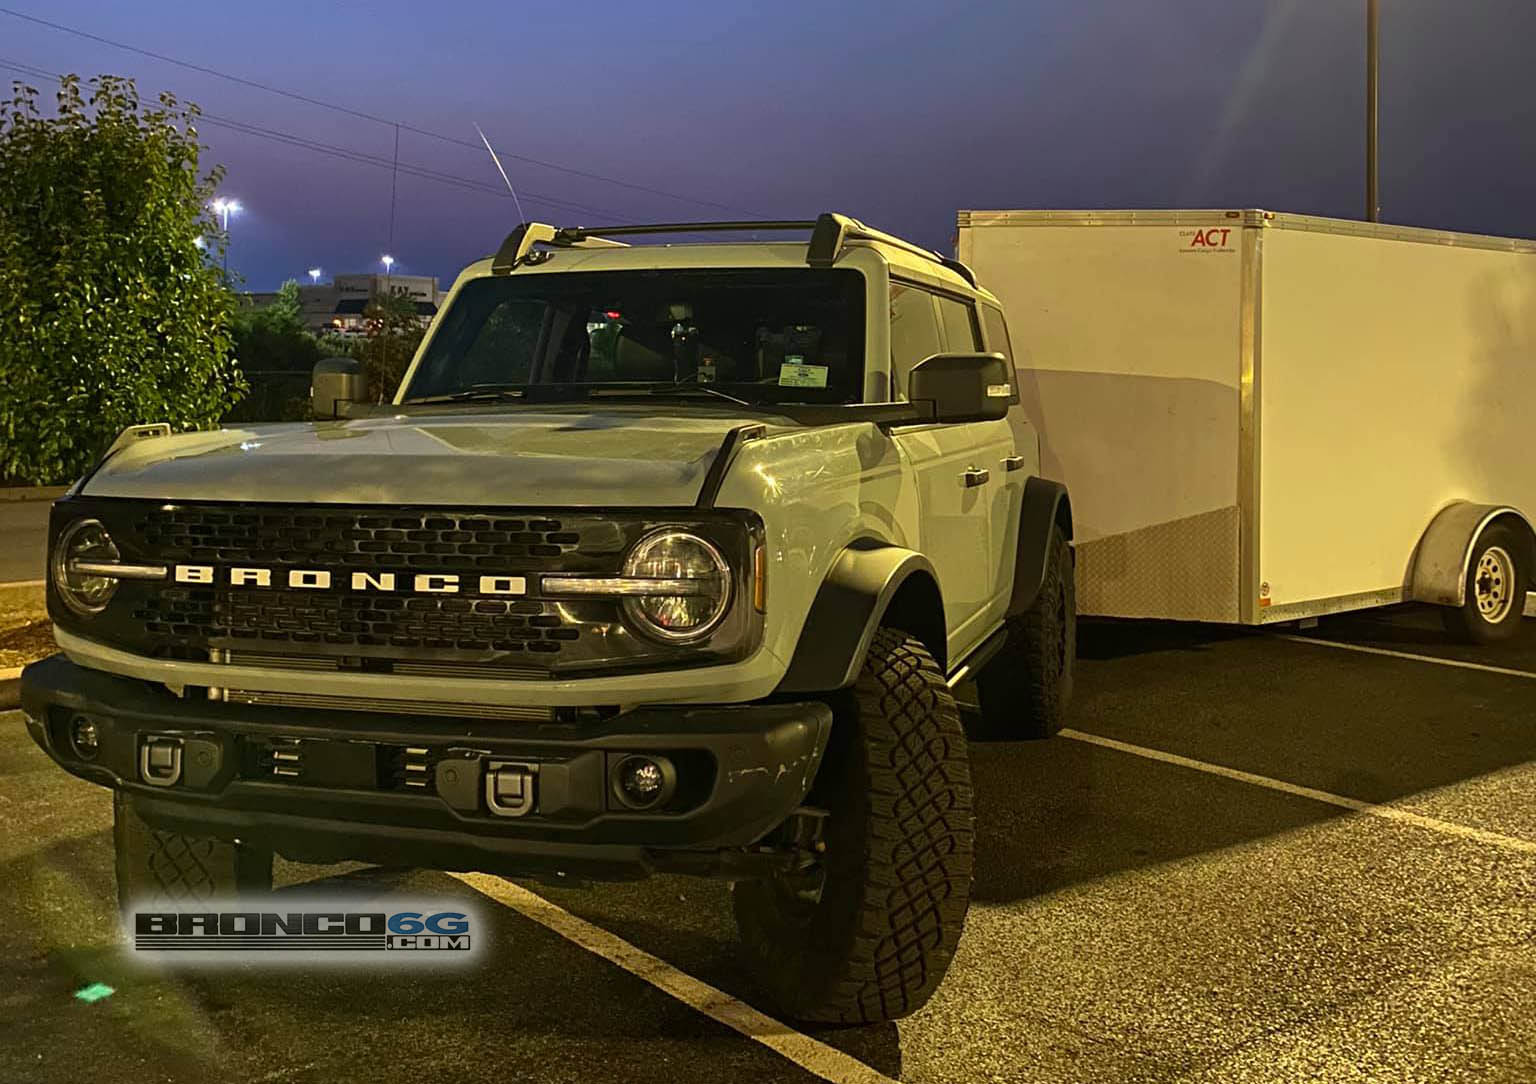 ctus-gray-2021-bronco-sasquatch-towing-trailer-jpg.jpg